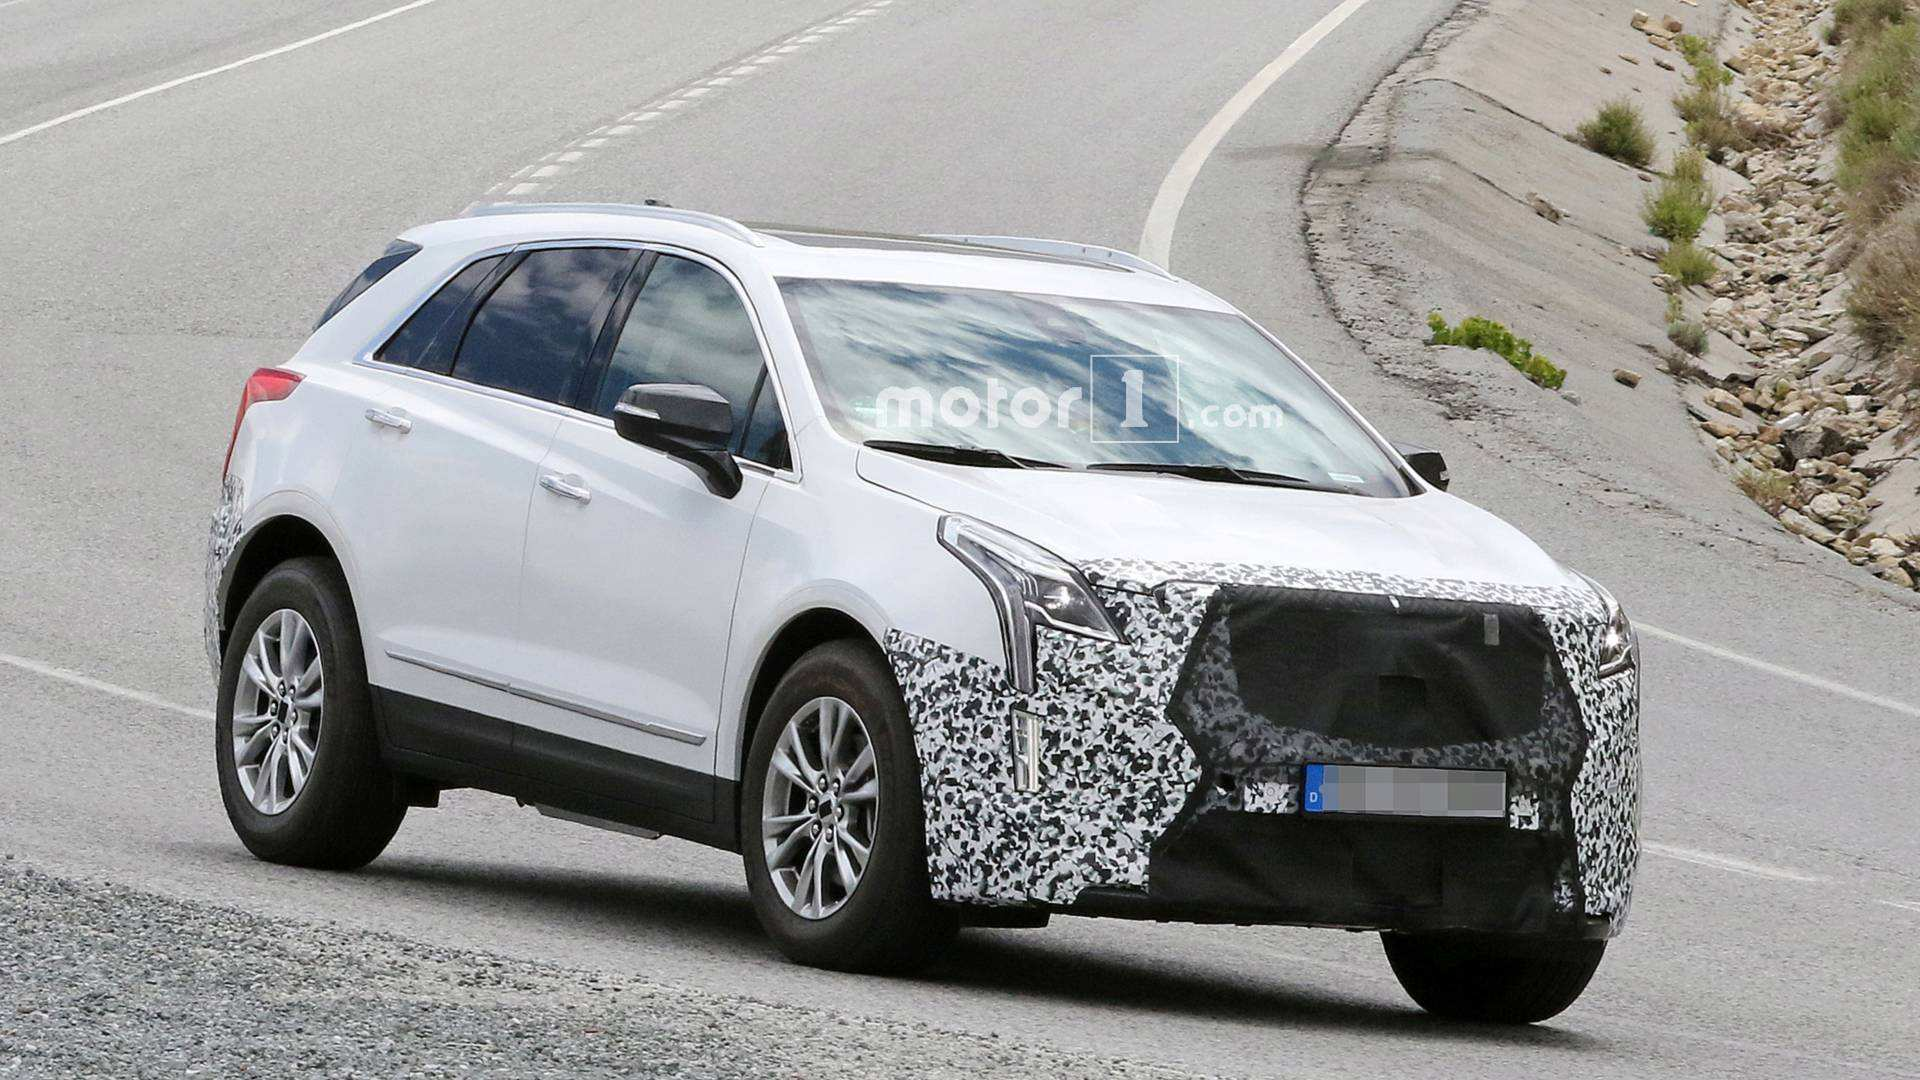 91 All New 2020 Spy Shots Cadillac Xt5 Price and Review with 2020 Spy Shots Cadillac Xt5